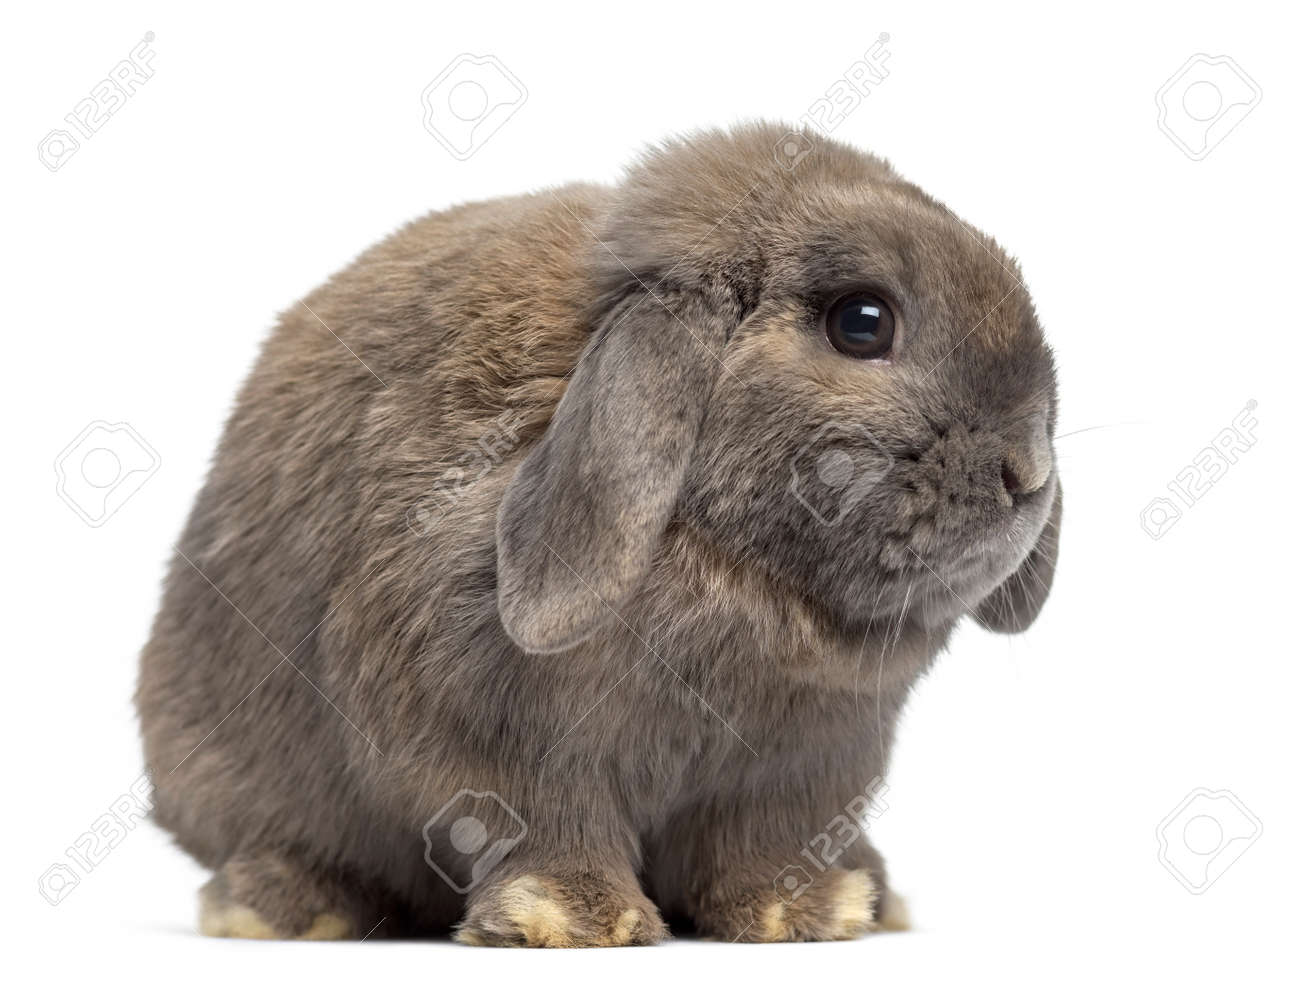 lop rabbit stock photos royalty free lop rabbit images and pictures